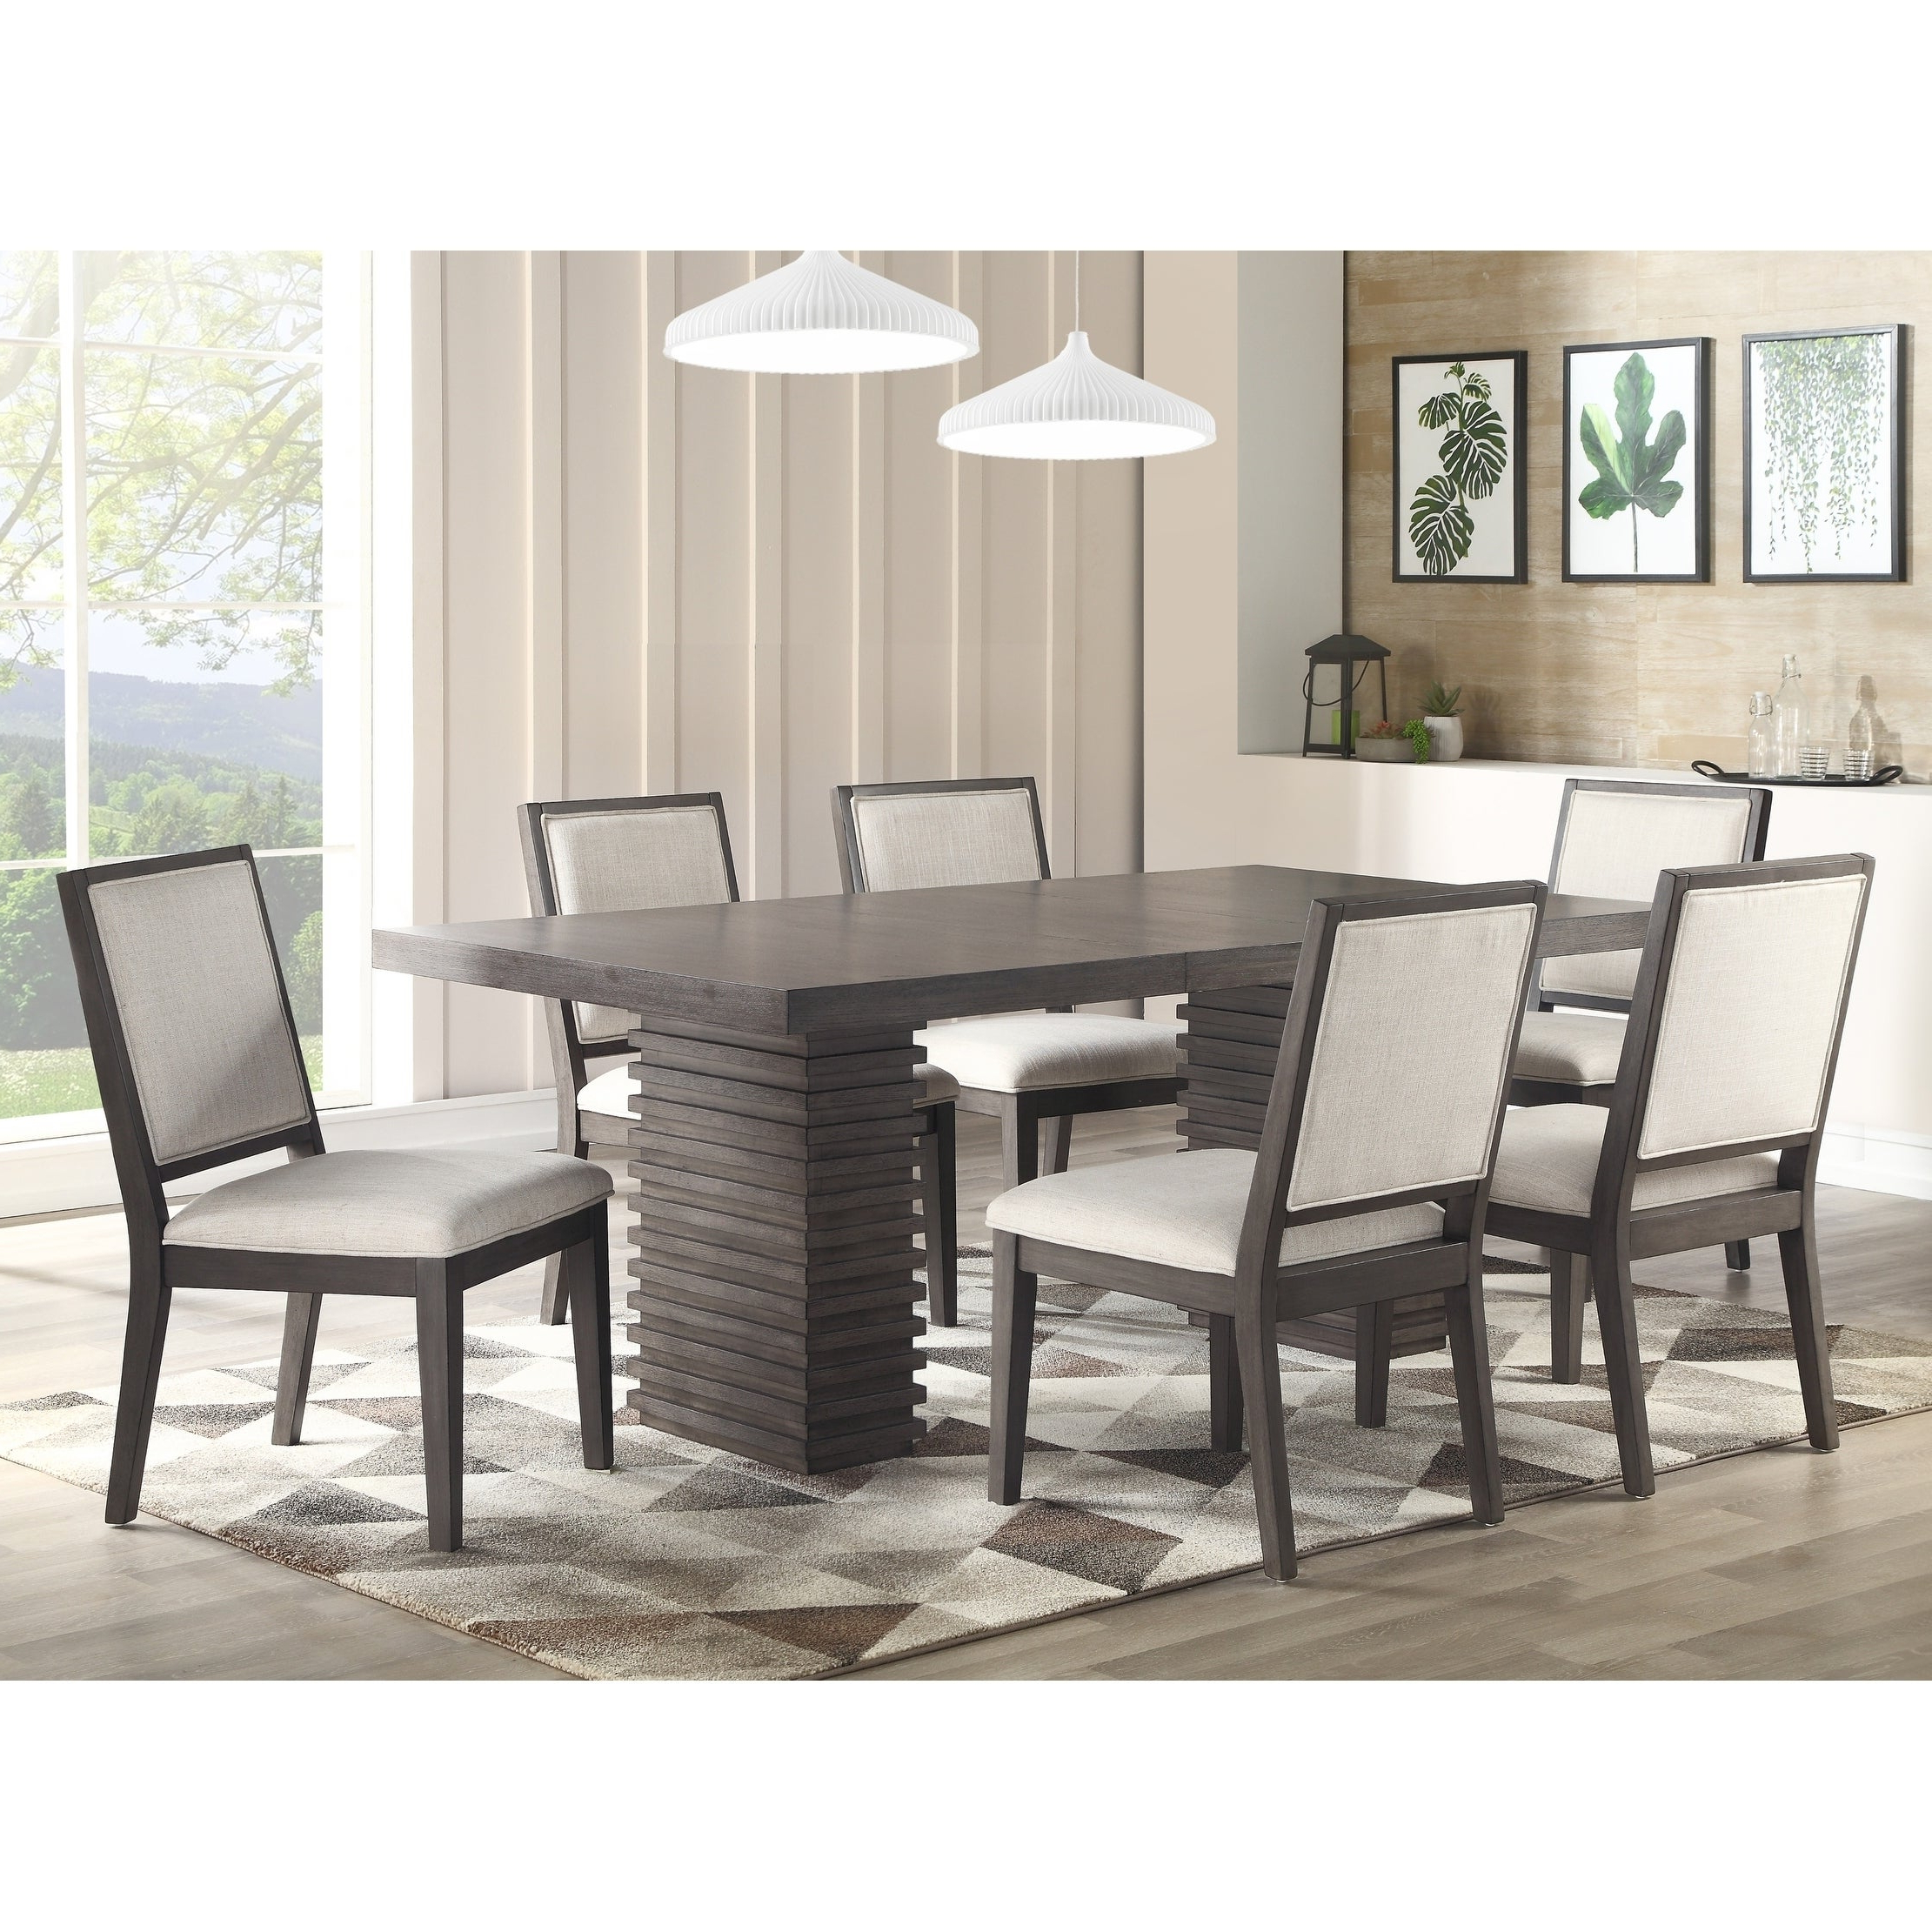 Osterman 6 Piece Extendable Dining Sets (Set Of 6) Throughout Preferred Buy 6 Piece Sets Kitchen & Dining Room Sets Online At Overstock (View 2 of 25)